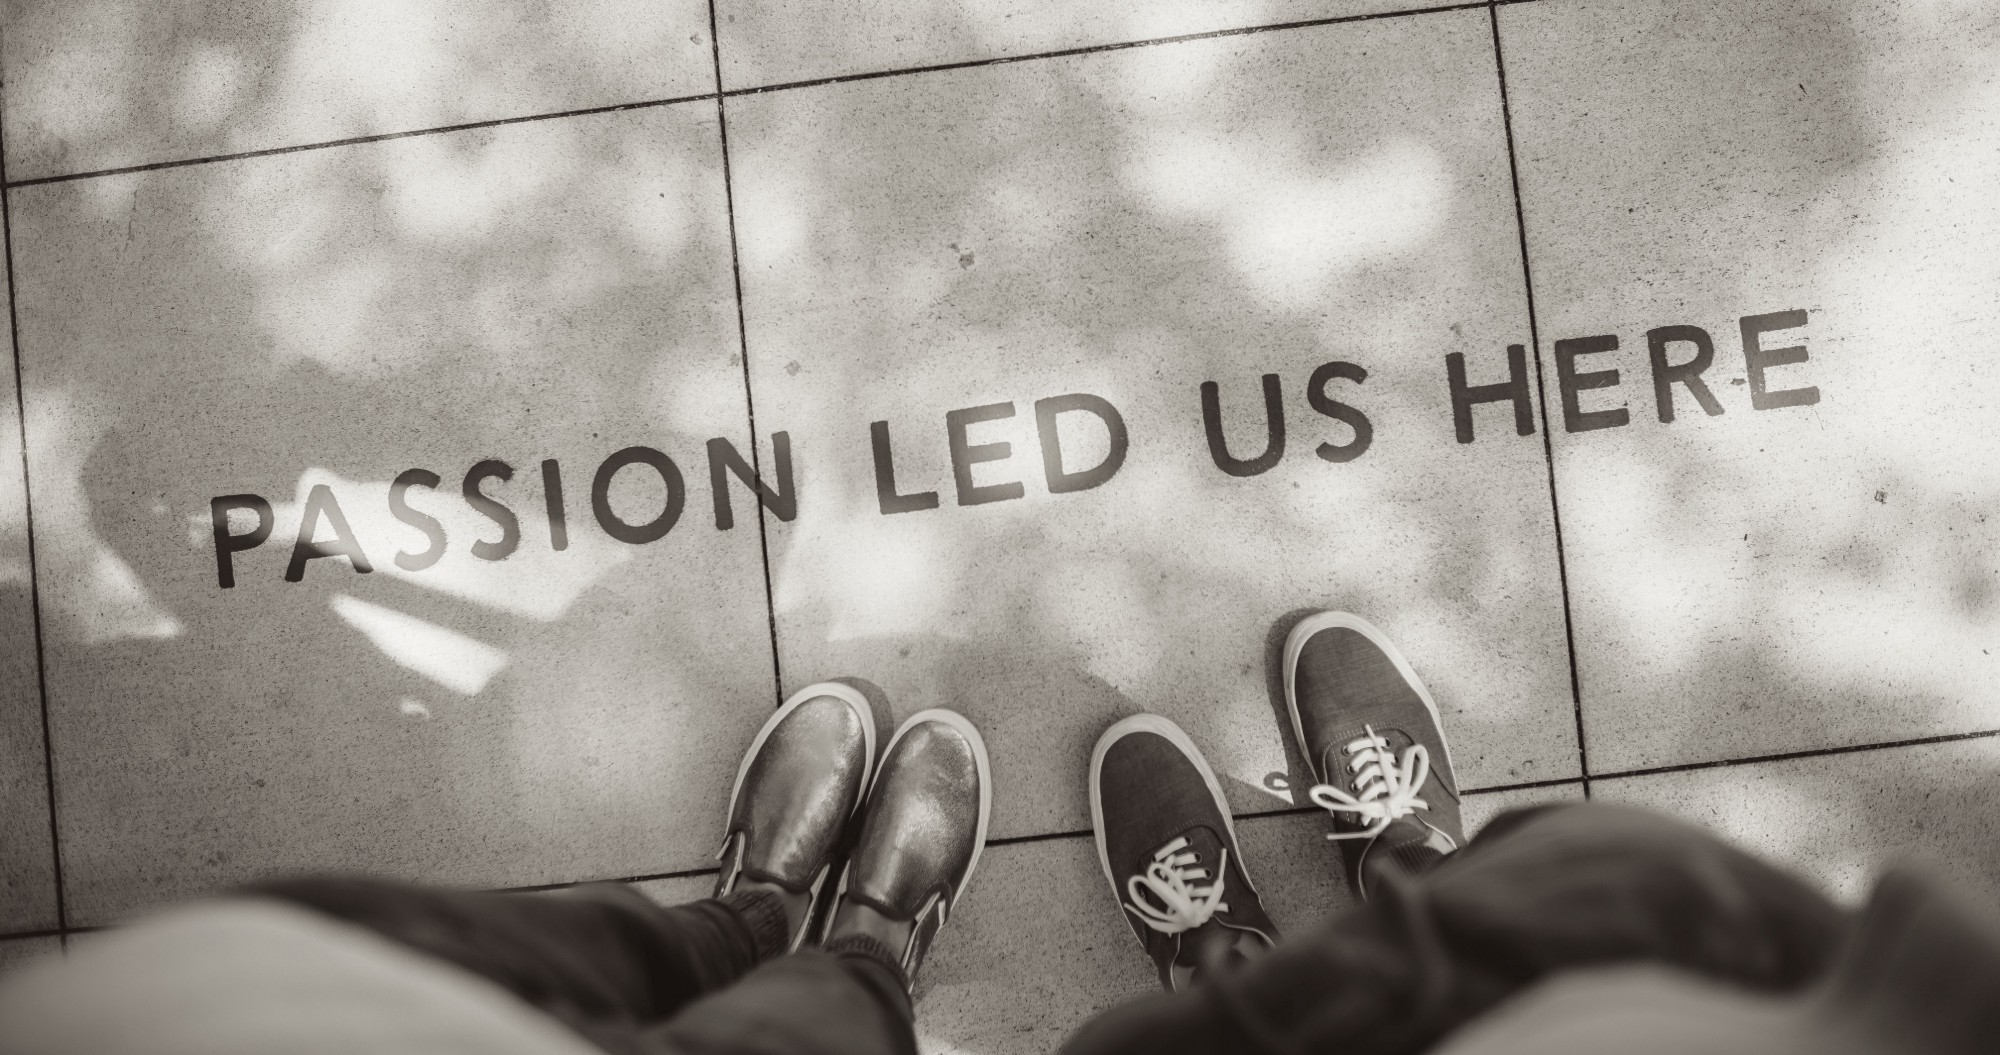 """Photo of two sets of feet standing on a pavement with the text """"Passion led us here""""."""